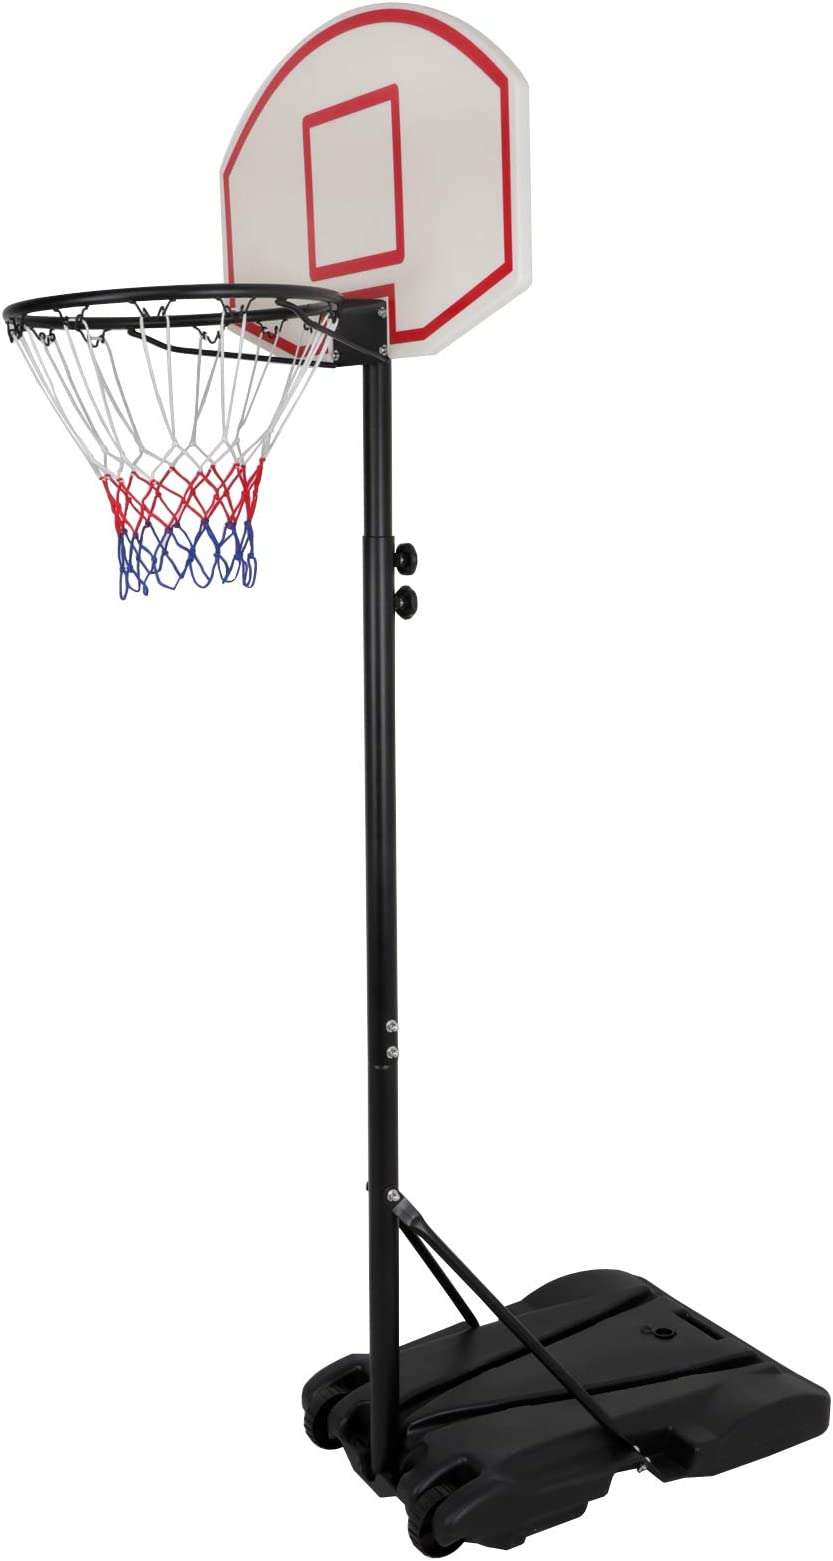 7FT Basketball Hoop Rim Movable Stand for Kid Junior Practice Shoot with Wheels